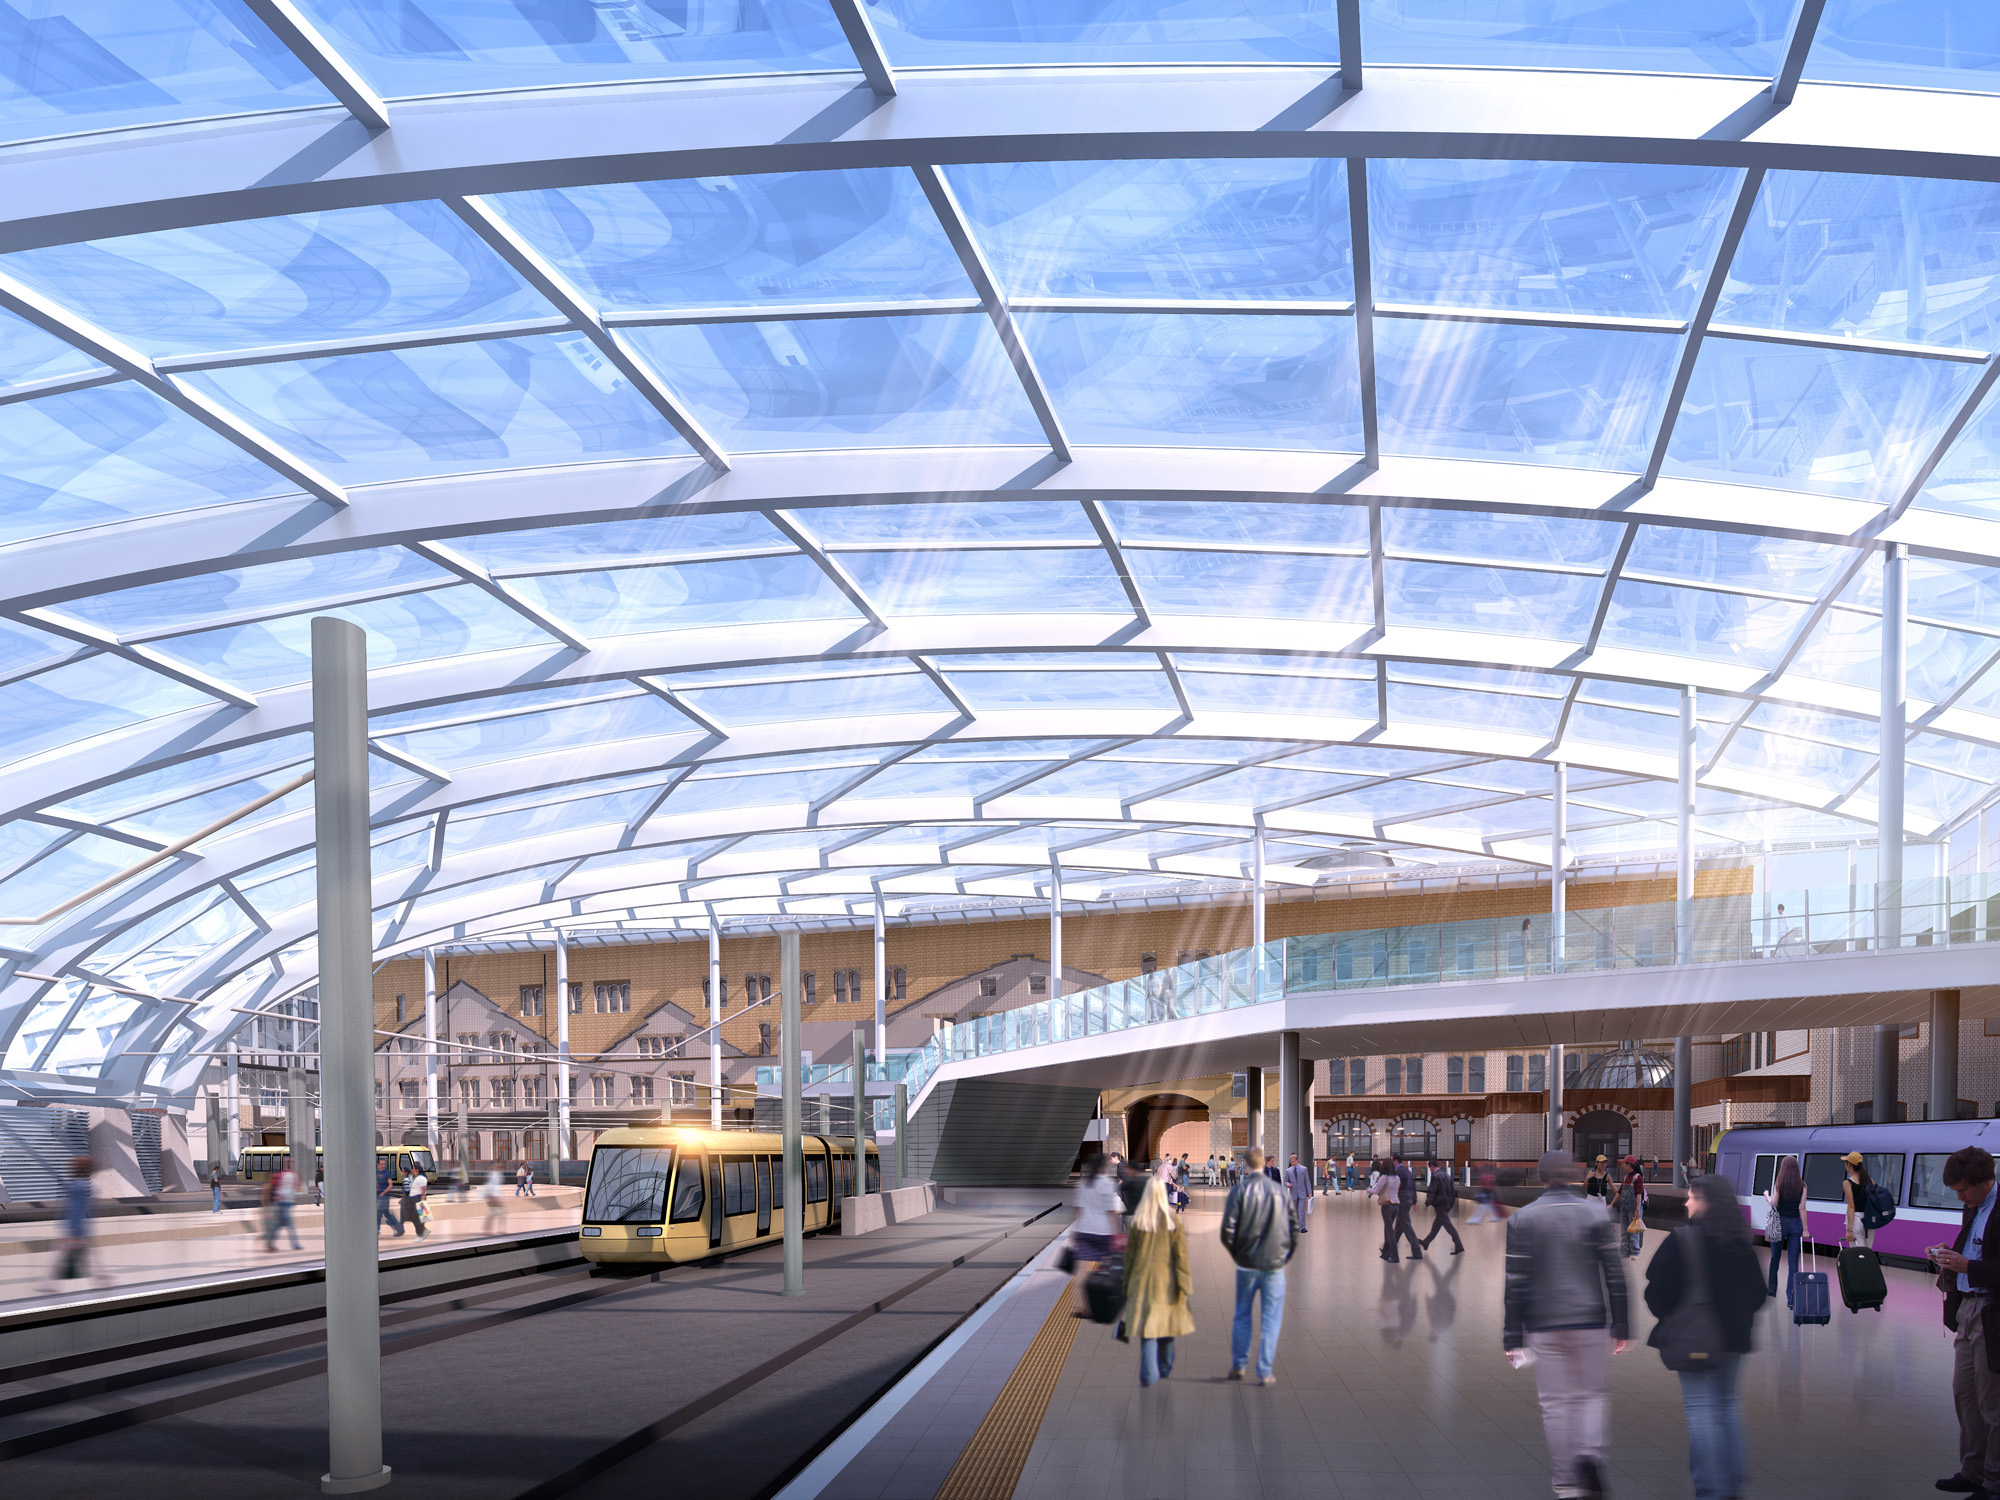 An artist's impression of how the revamped Victoria Station will look